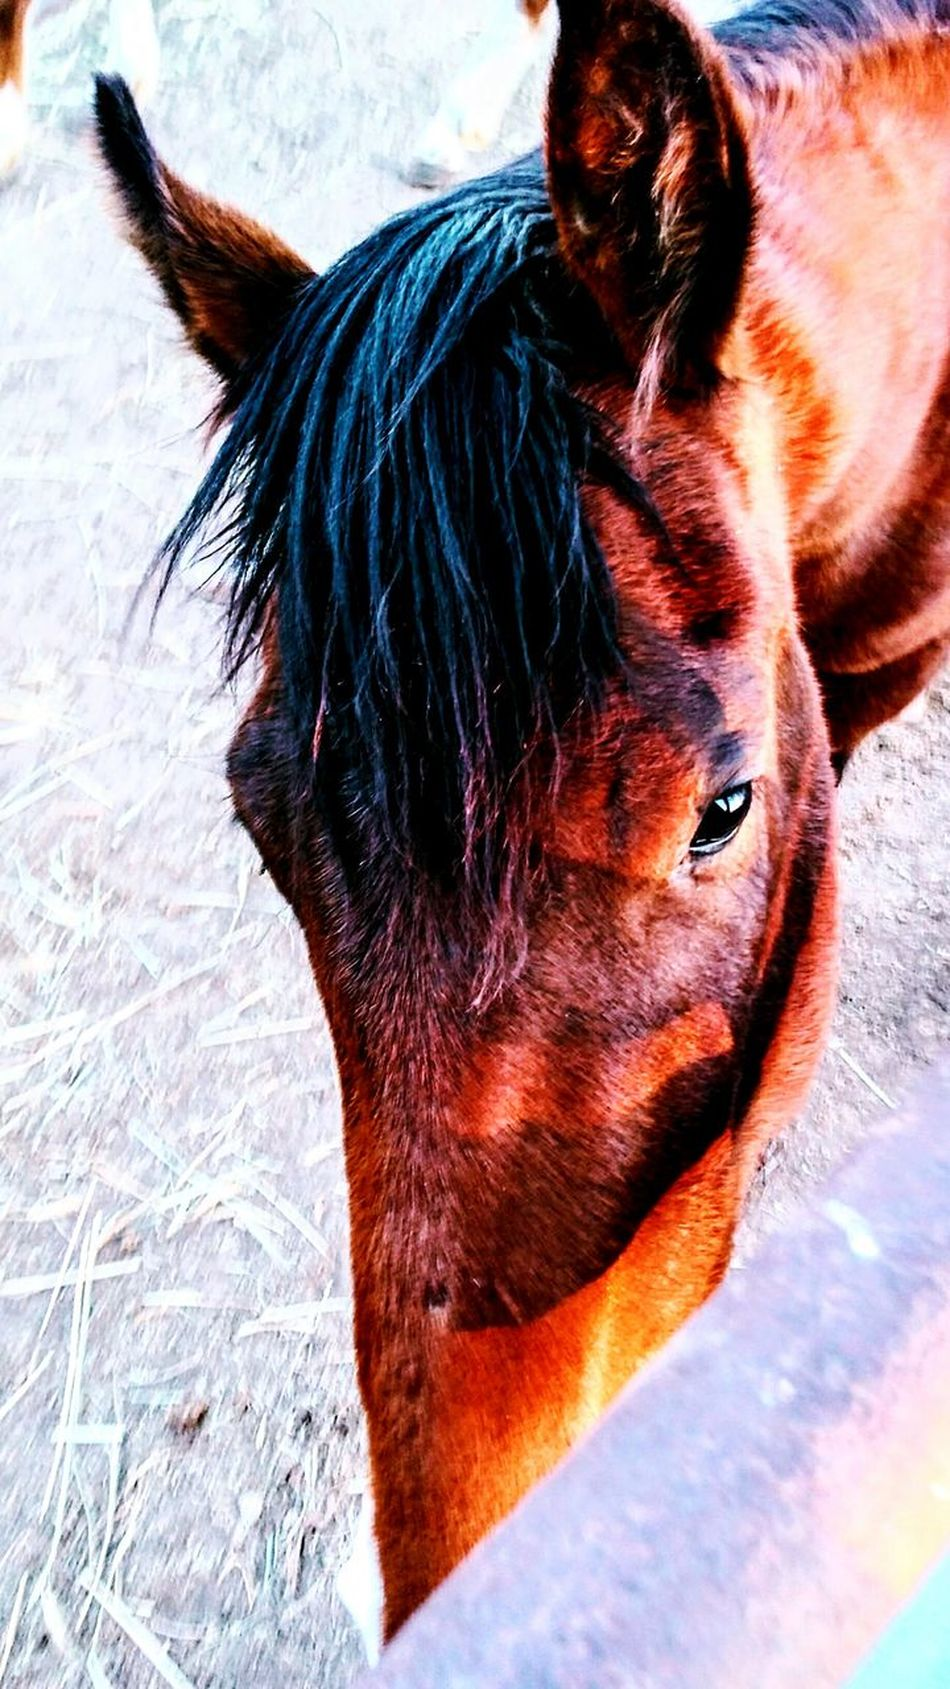 Ranch horses Domestic Animals Animal Themes One Animal Mammal Close-up No People Day Outdoors Filly Pasture, Paddock, Grassland, Pastureland Color Portrait Country Living Ranch Barn Ranch Life Farm Cowboy Country Life Mane Working Animal Horse Stable Livestock Sunlight Nature